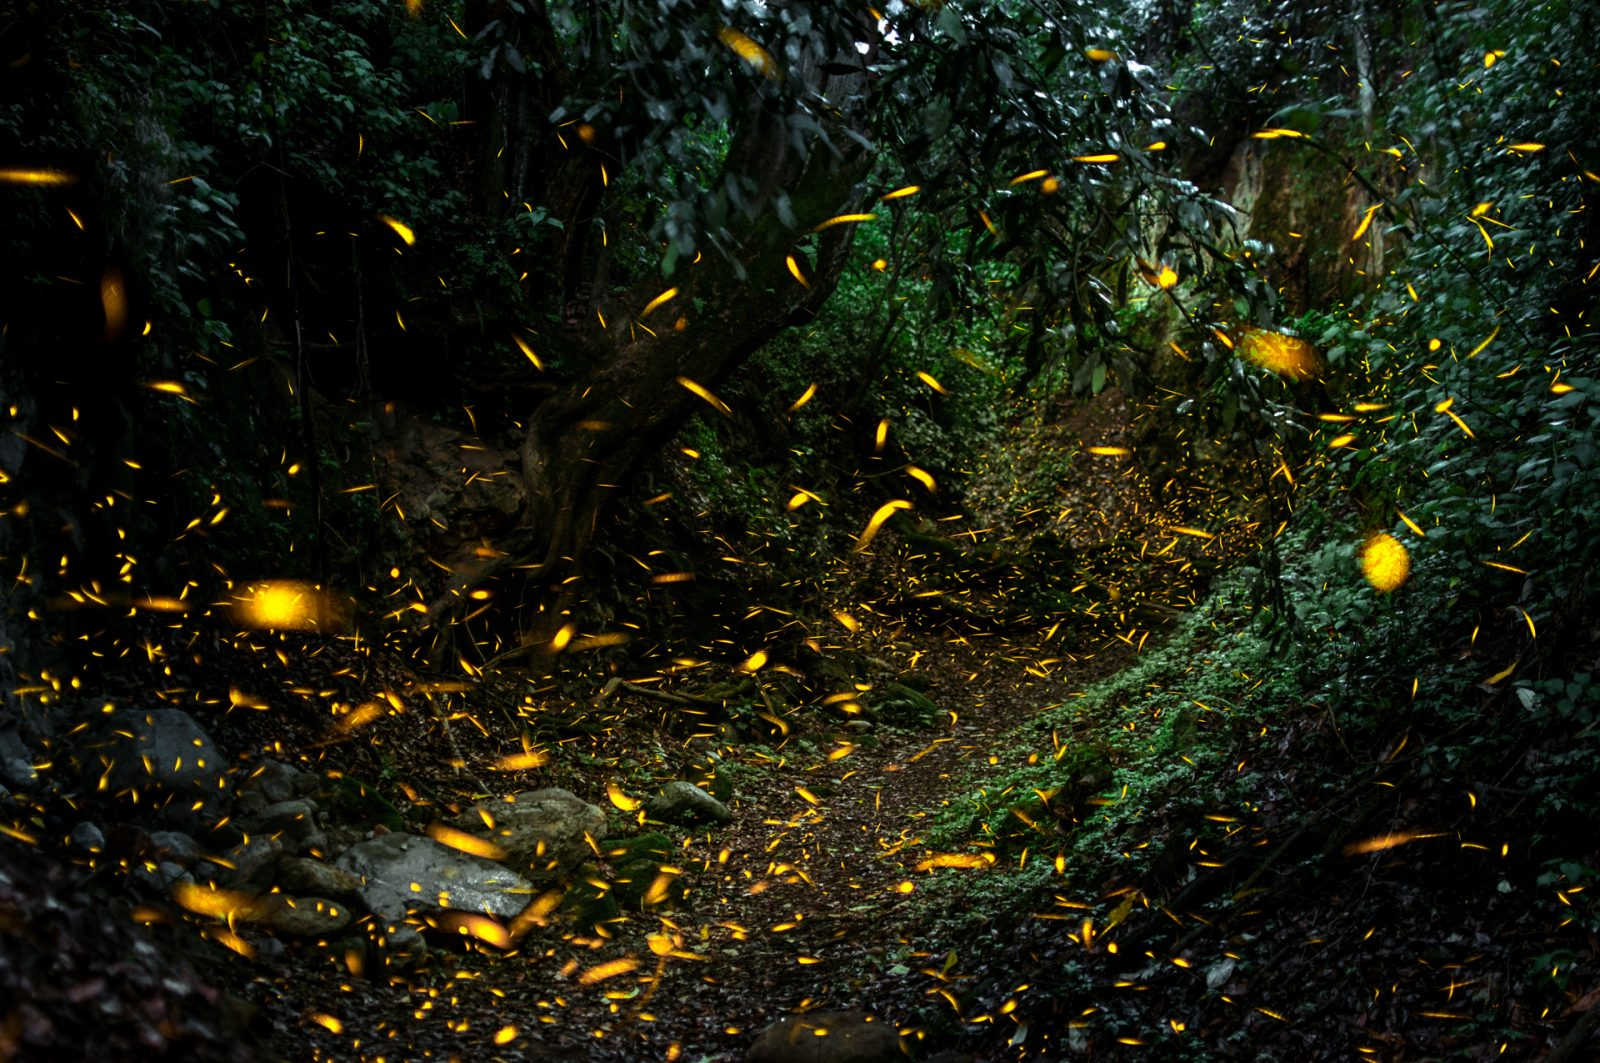 The dance of the fireflies in the Emerald Forest